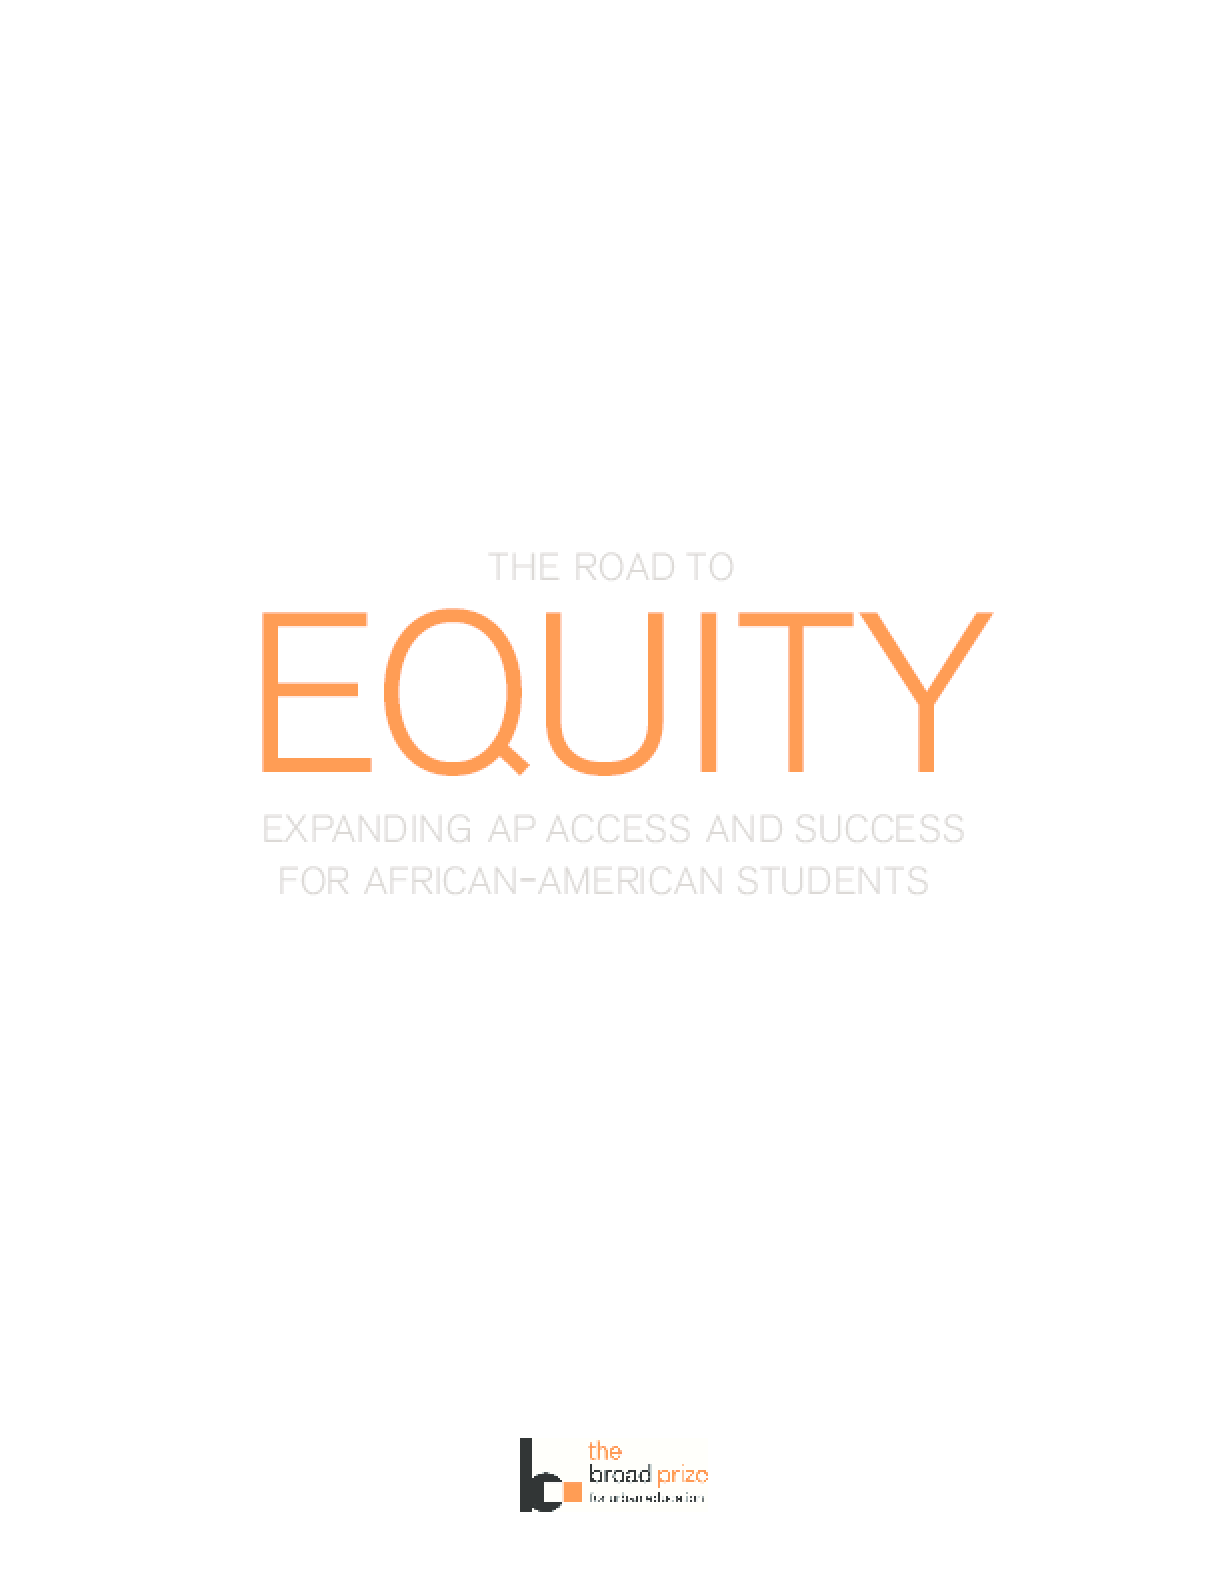 The Road to Equity - Expanding AP Access and Success for African-American Students